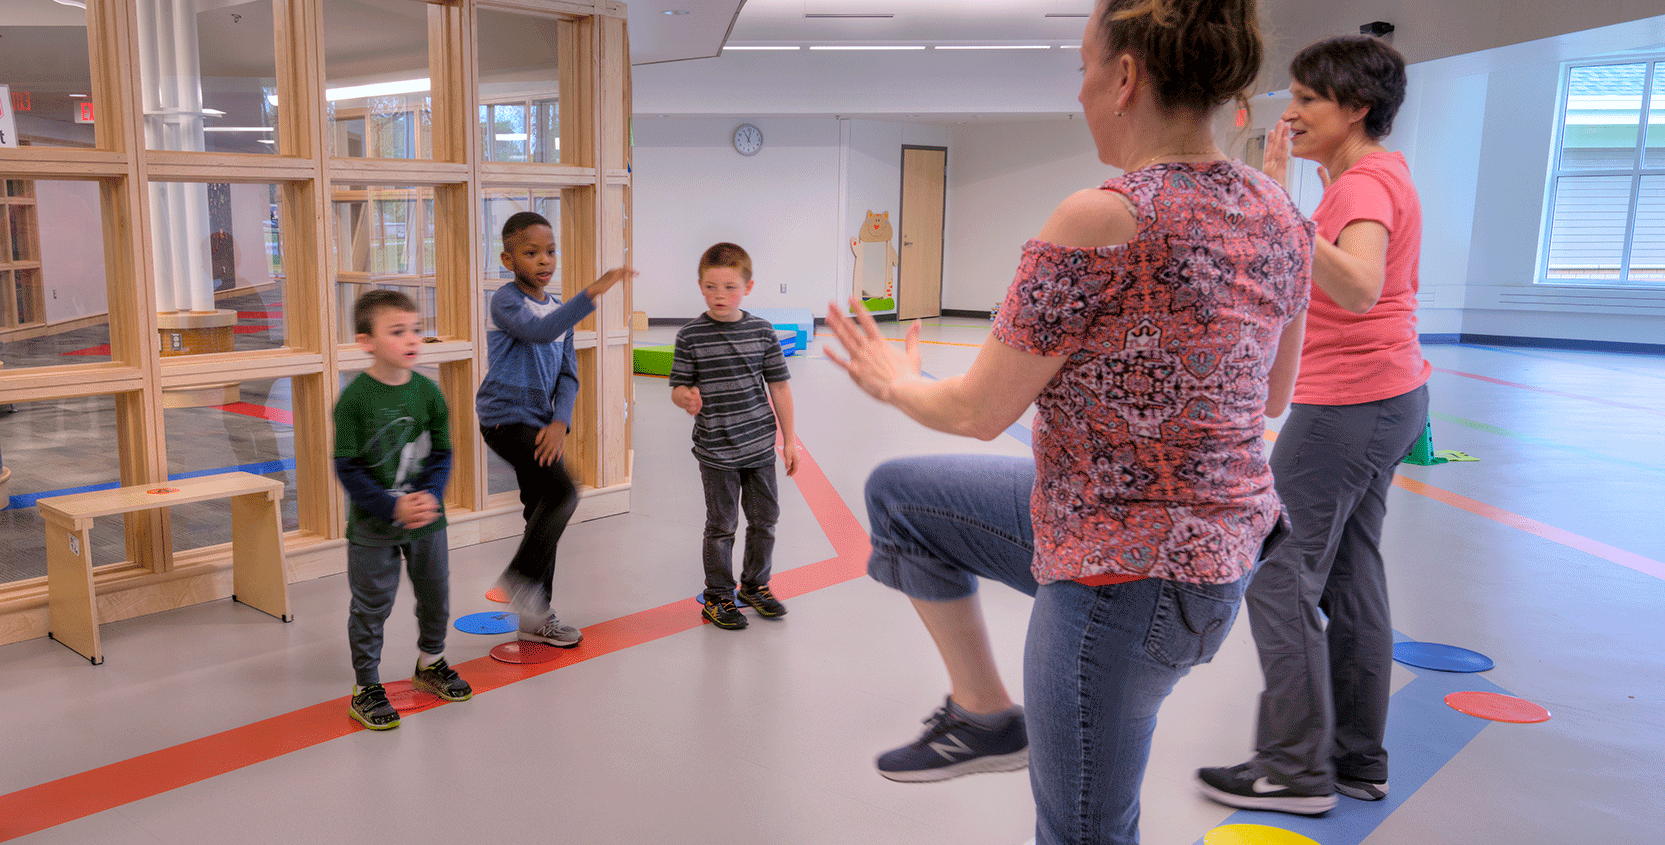 PHASD-Early-Childhood-Education-Center-Exercise-2_1665x845